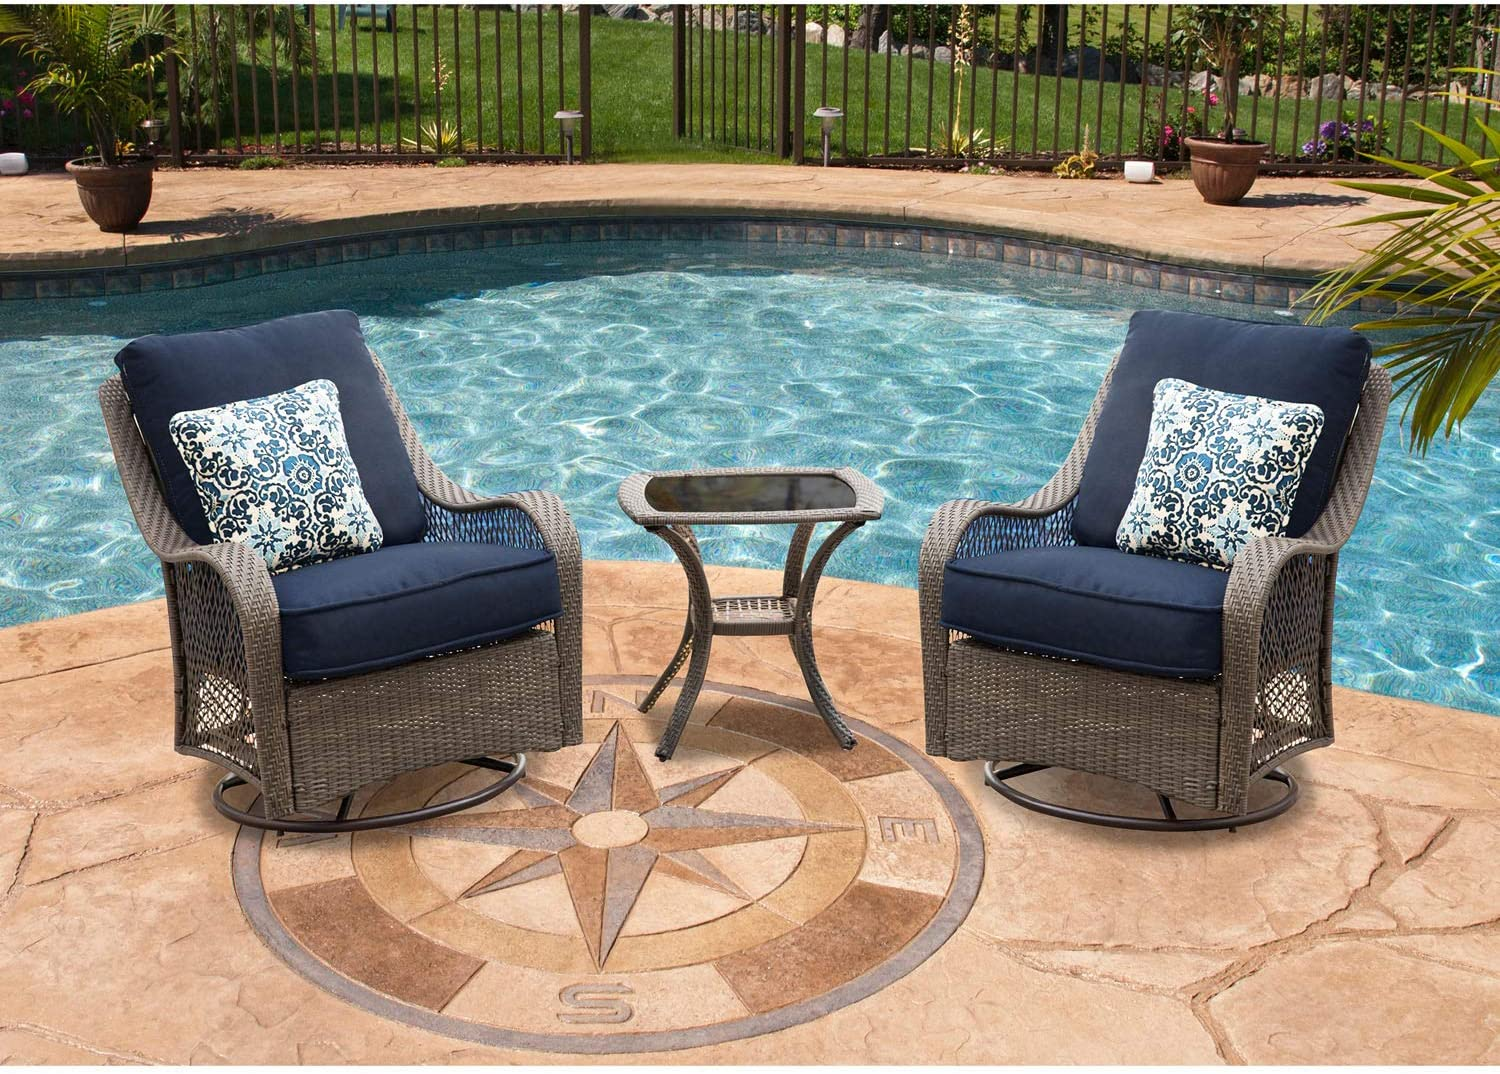 Hanover Orleans 3-Piece Swivel Gliding Chat Set in Heather Gray with Gray Weave